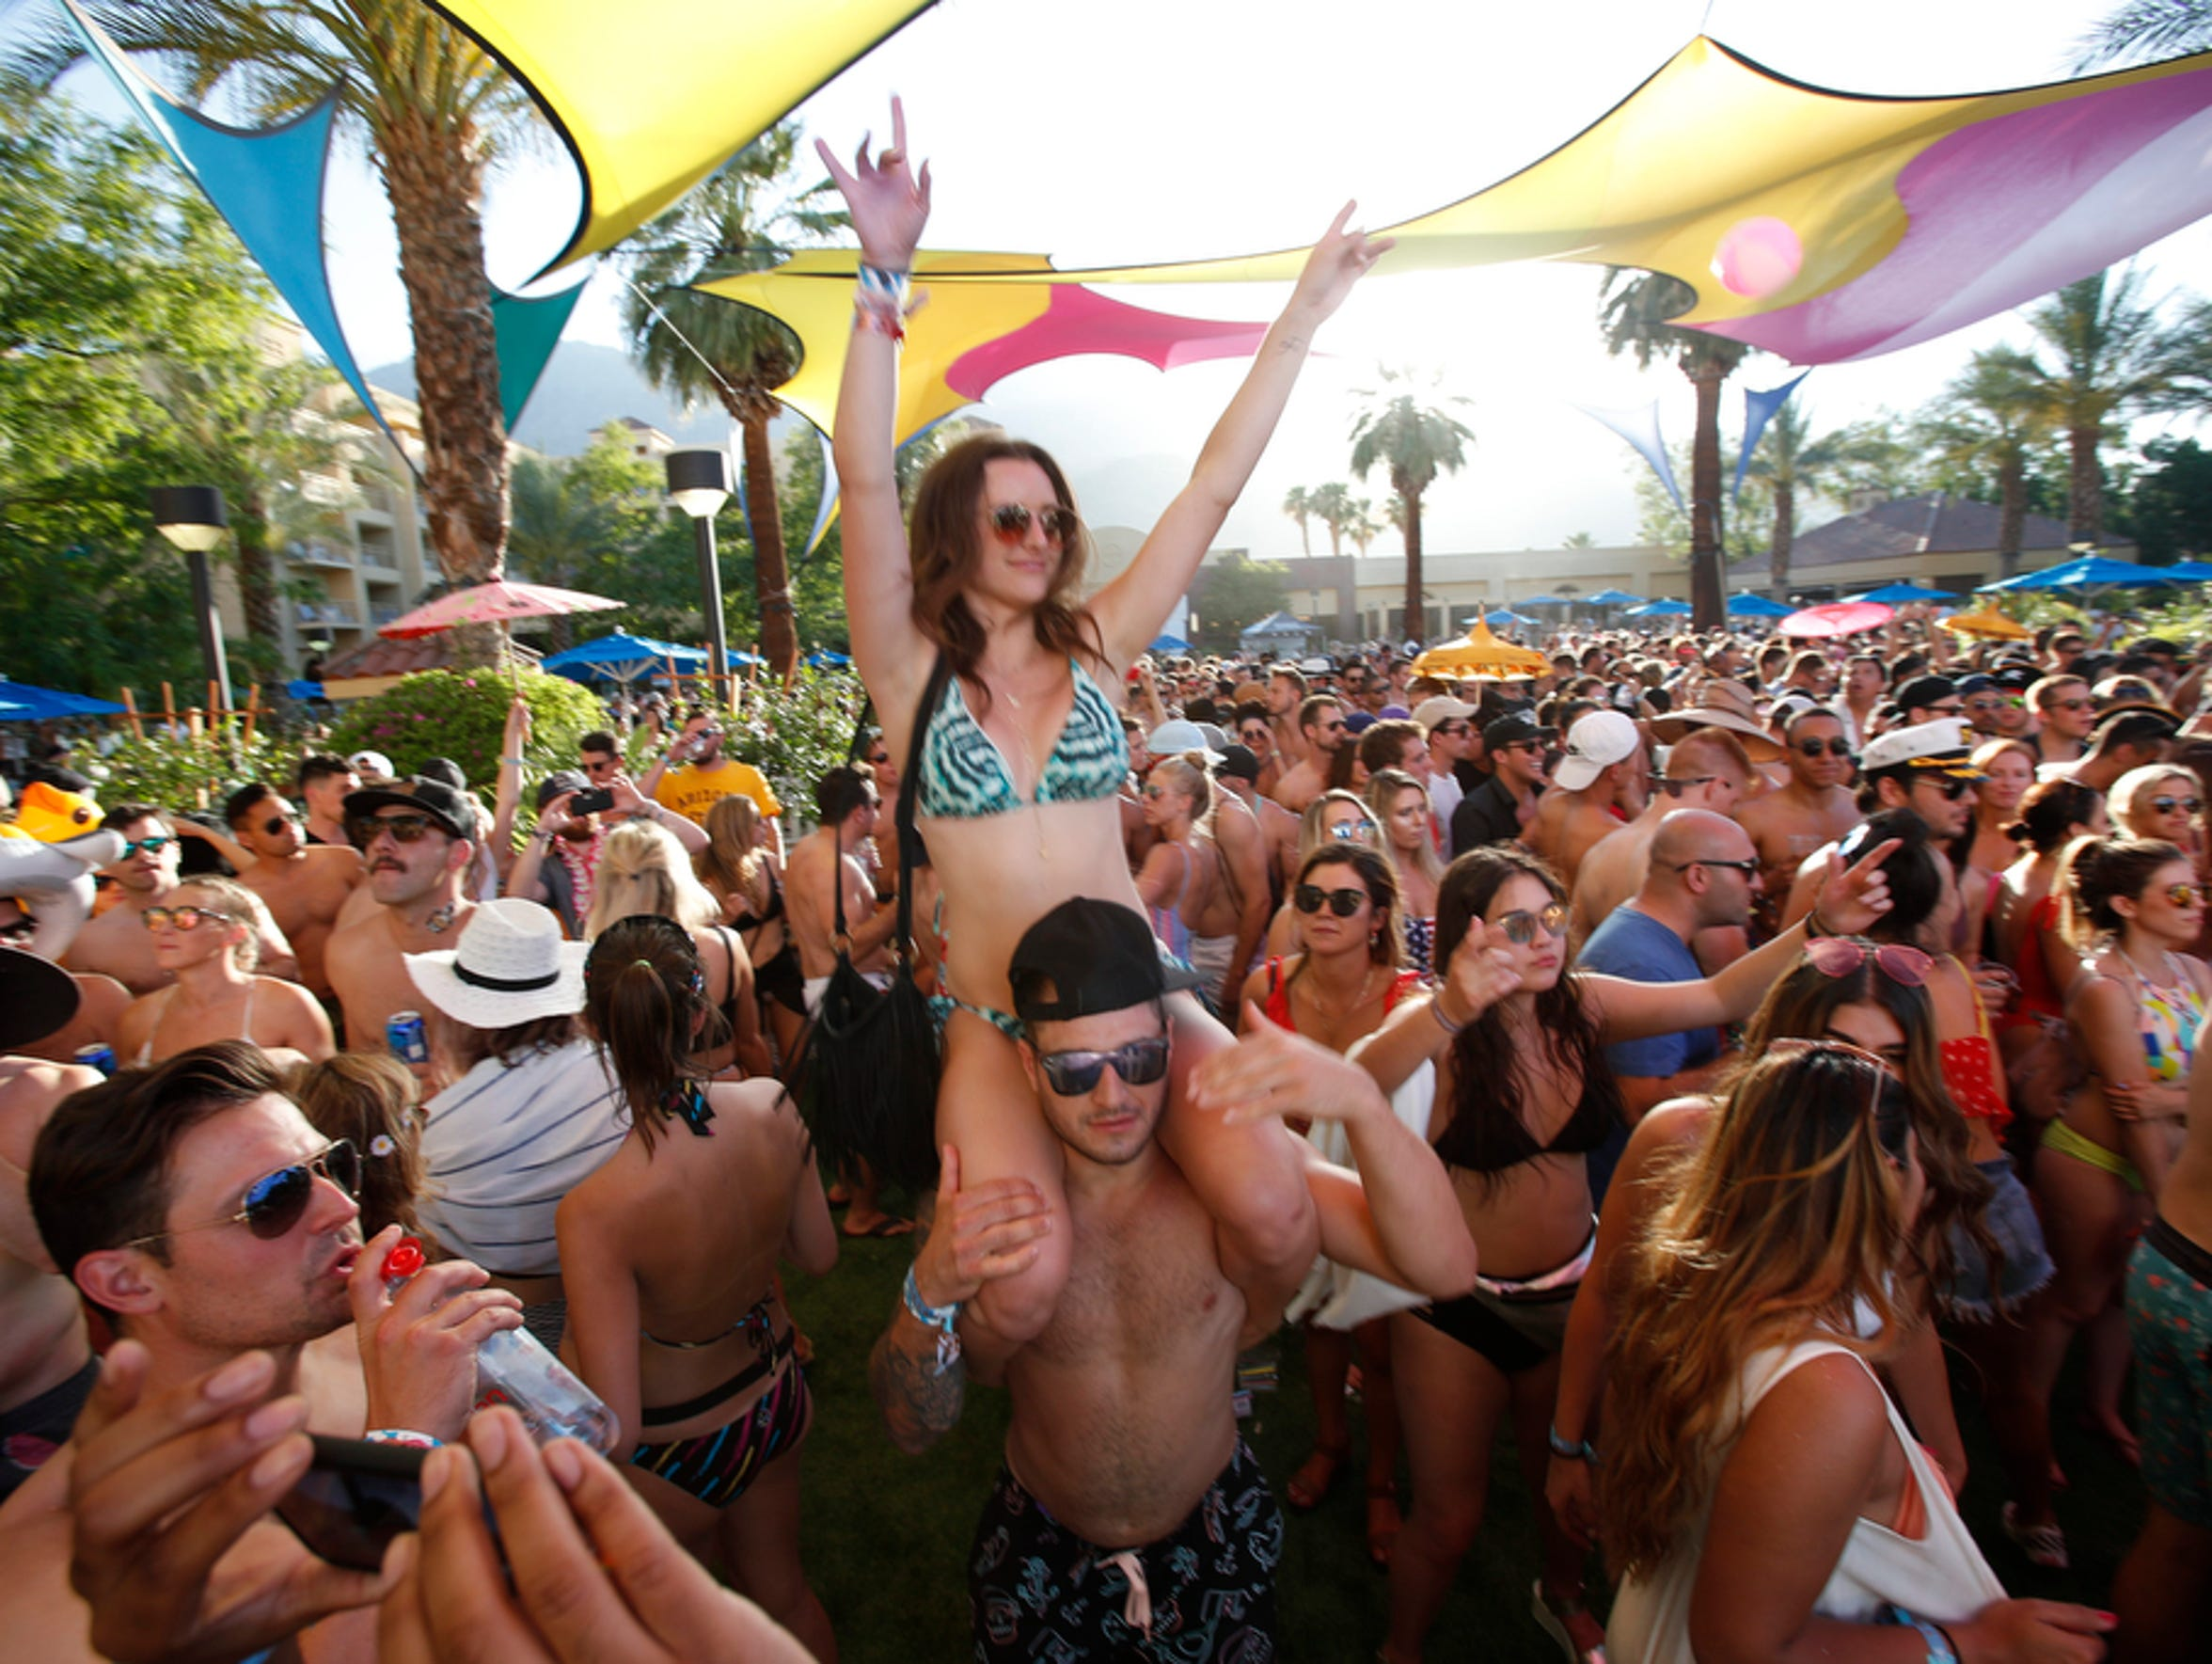 Splash House has been a game-changer for Palm Springs hotel business in June and August. The electronic music event put on by Goldenvoice brings musical entertainment poolside during the day at a variety of resorts in Palm Springs, and at night on the tarmac at the Palm Springs Air Museum.